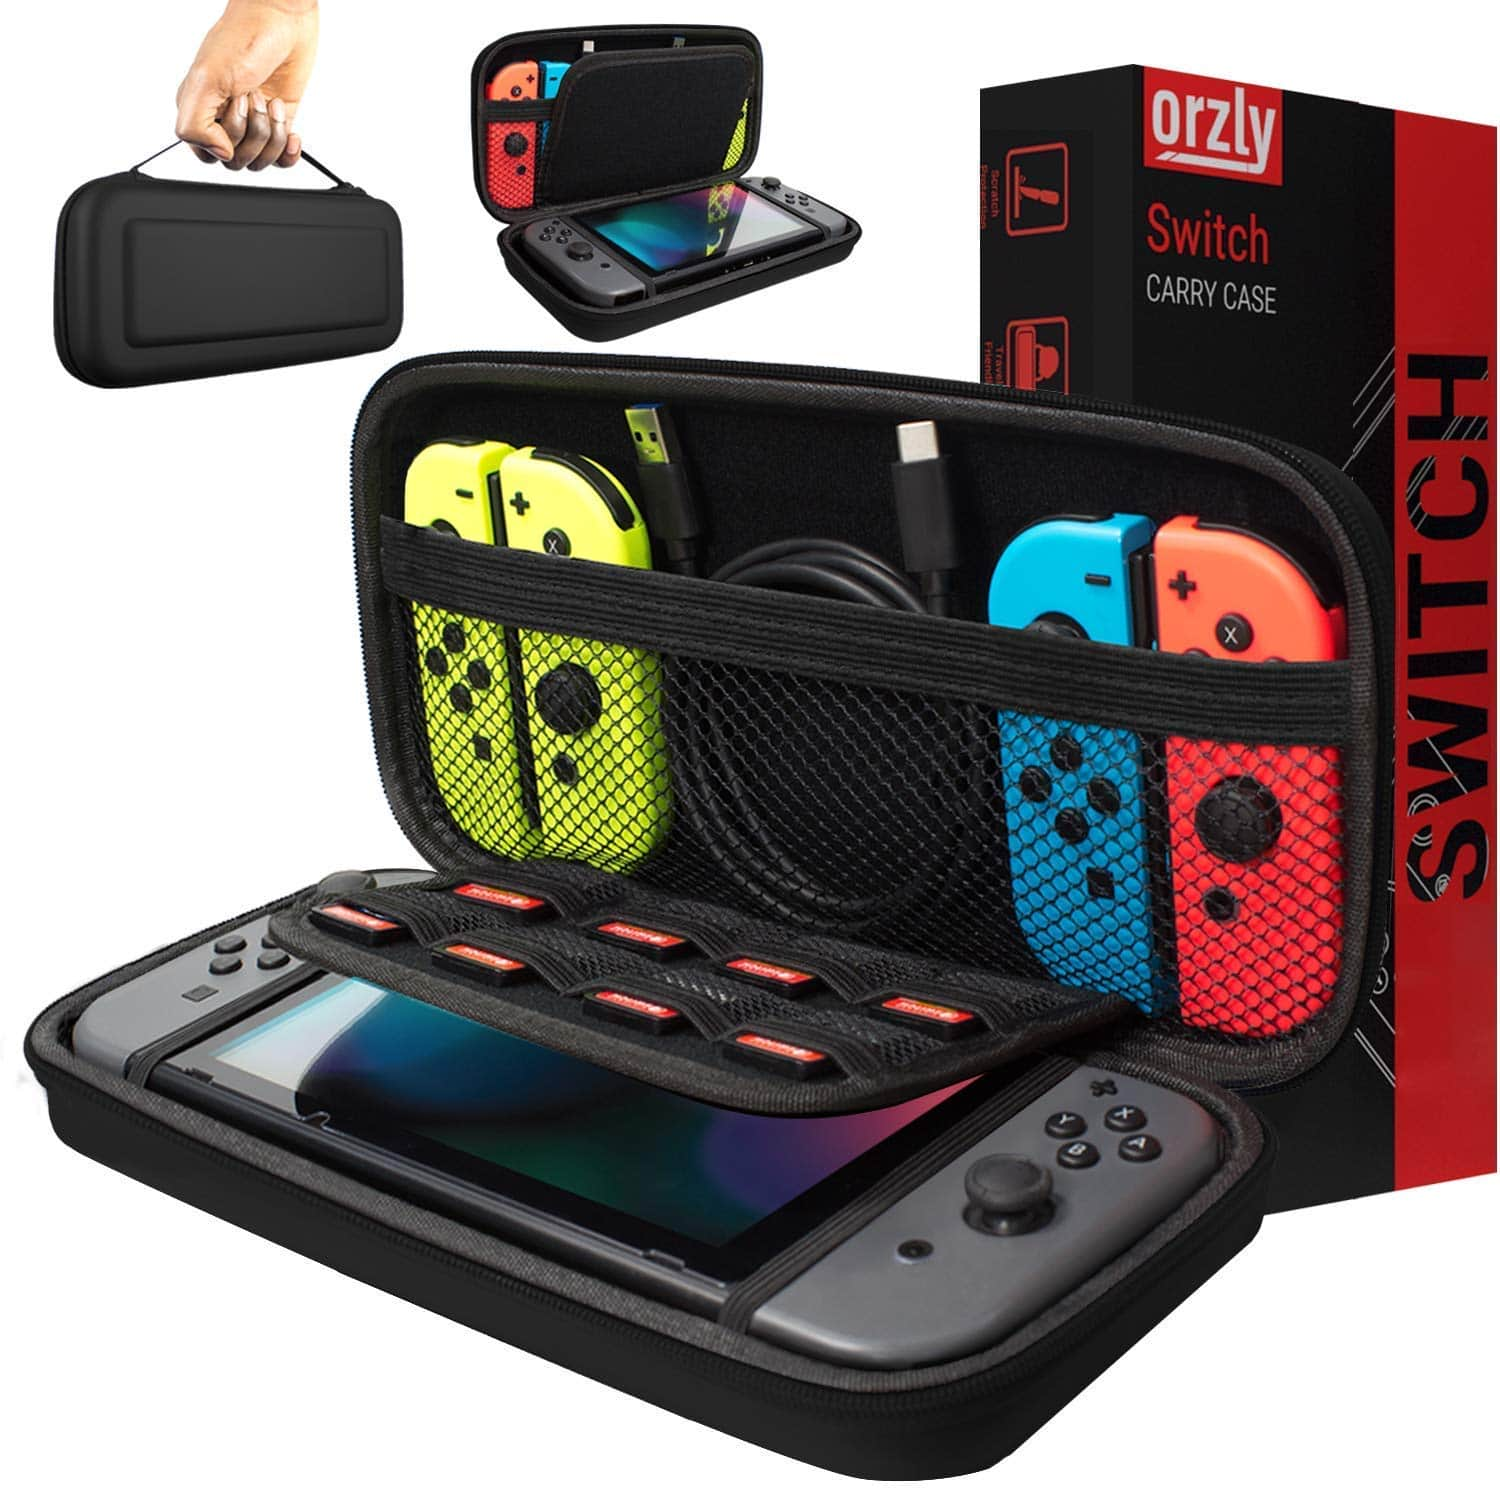 Orzly Carry Case Compatible With Nintendo Switch $10.19 FREE PRIME SHIPPING